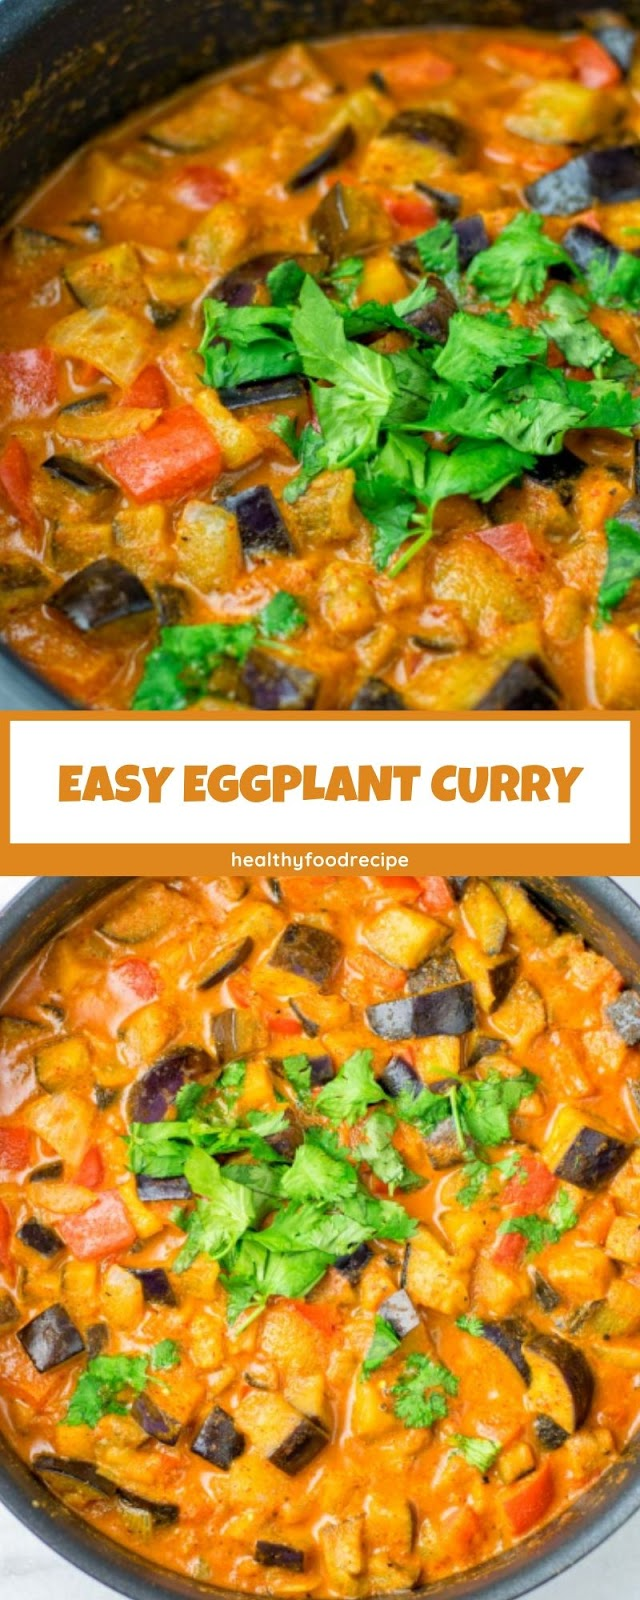 EASY EGGPLANT CURRY